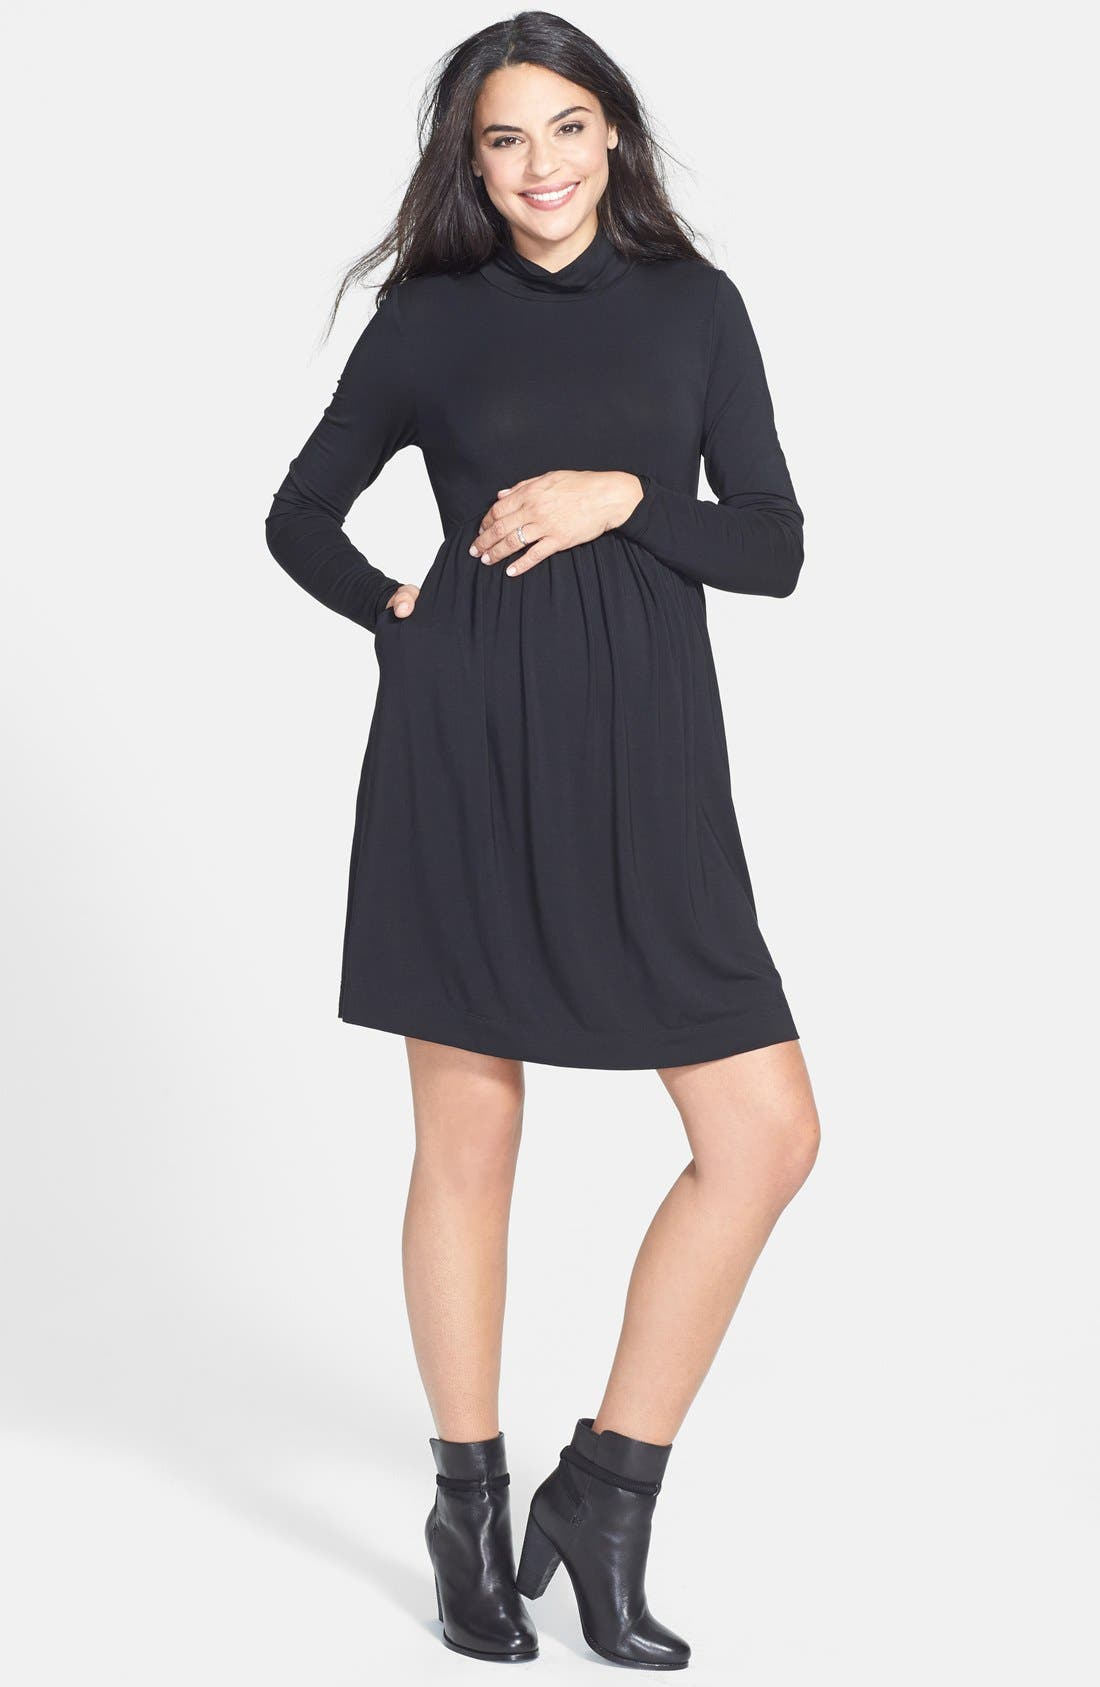 TART MATERNITY 'Rhiannon' Turtleneck Fit & Flare Maternity Dress, Main, color, BLACK